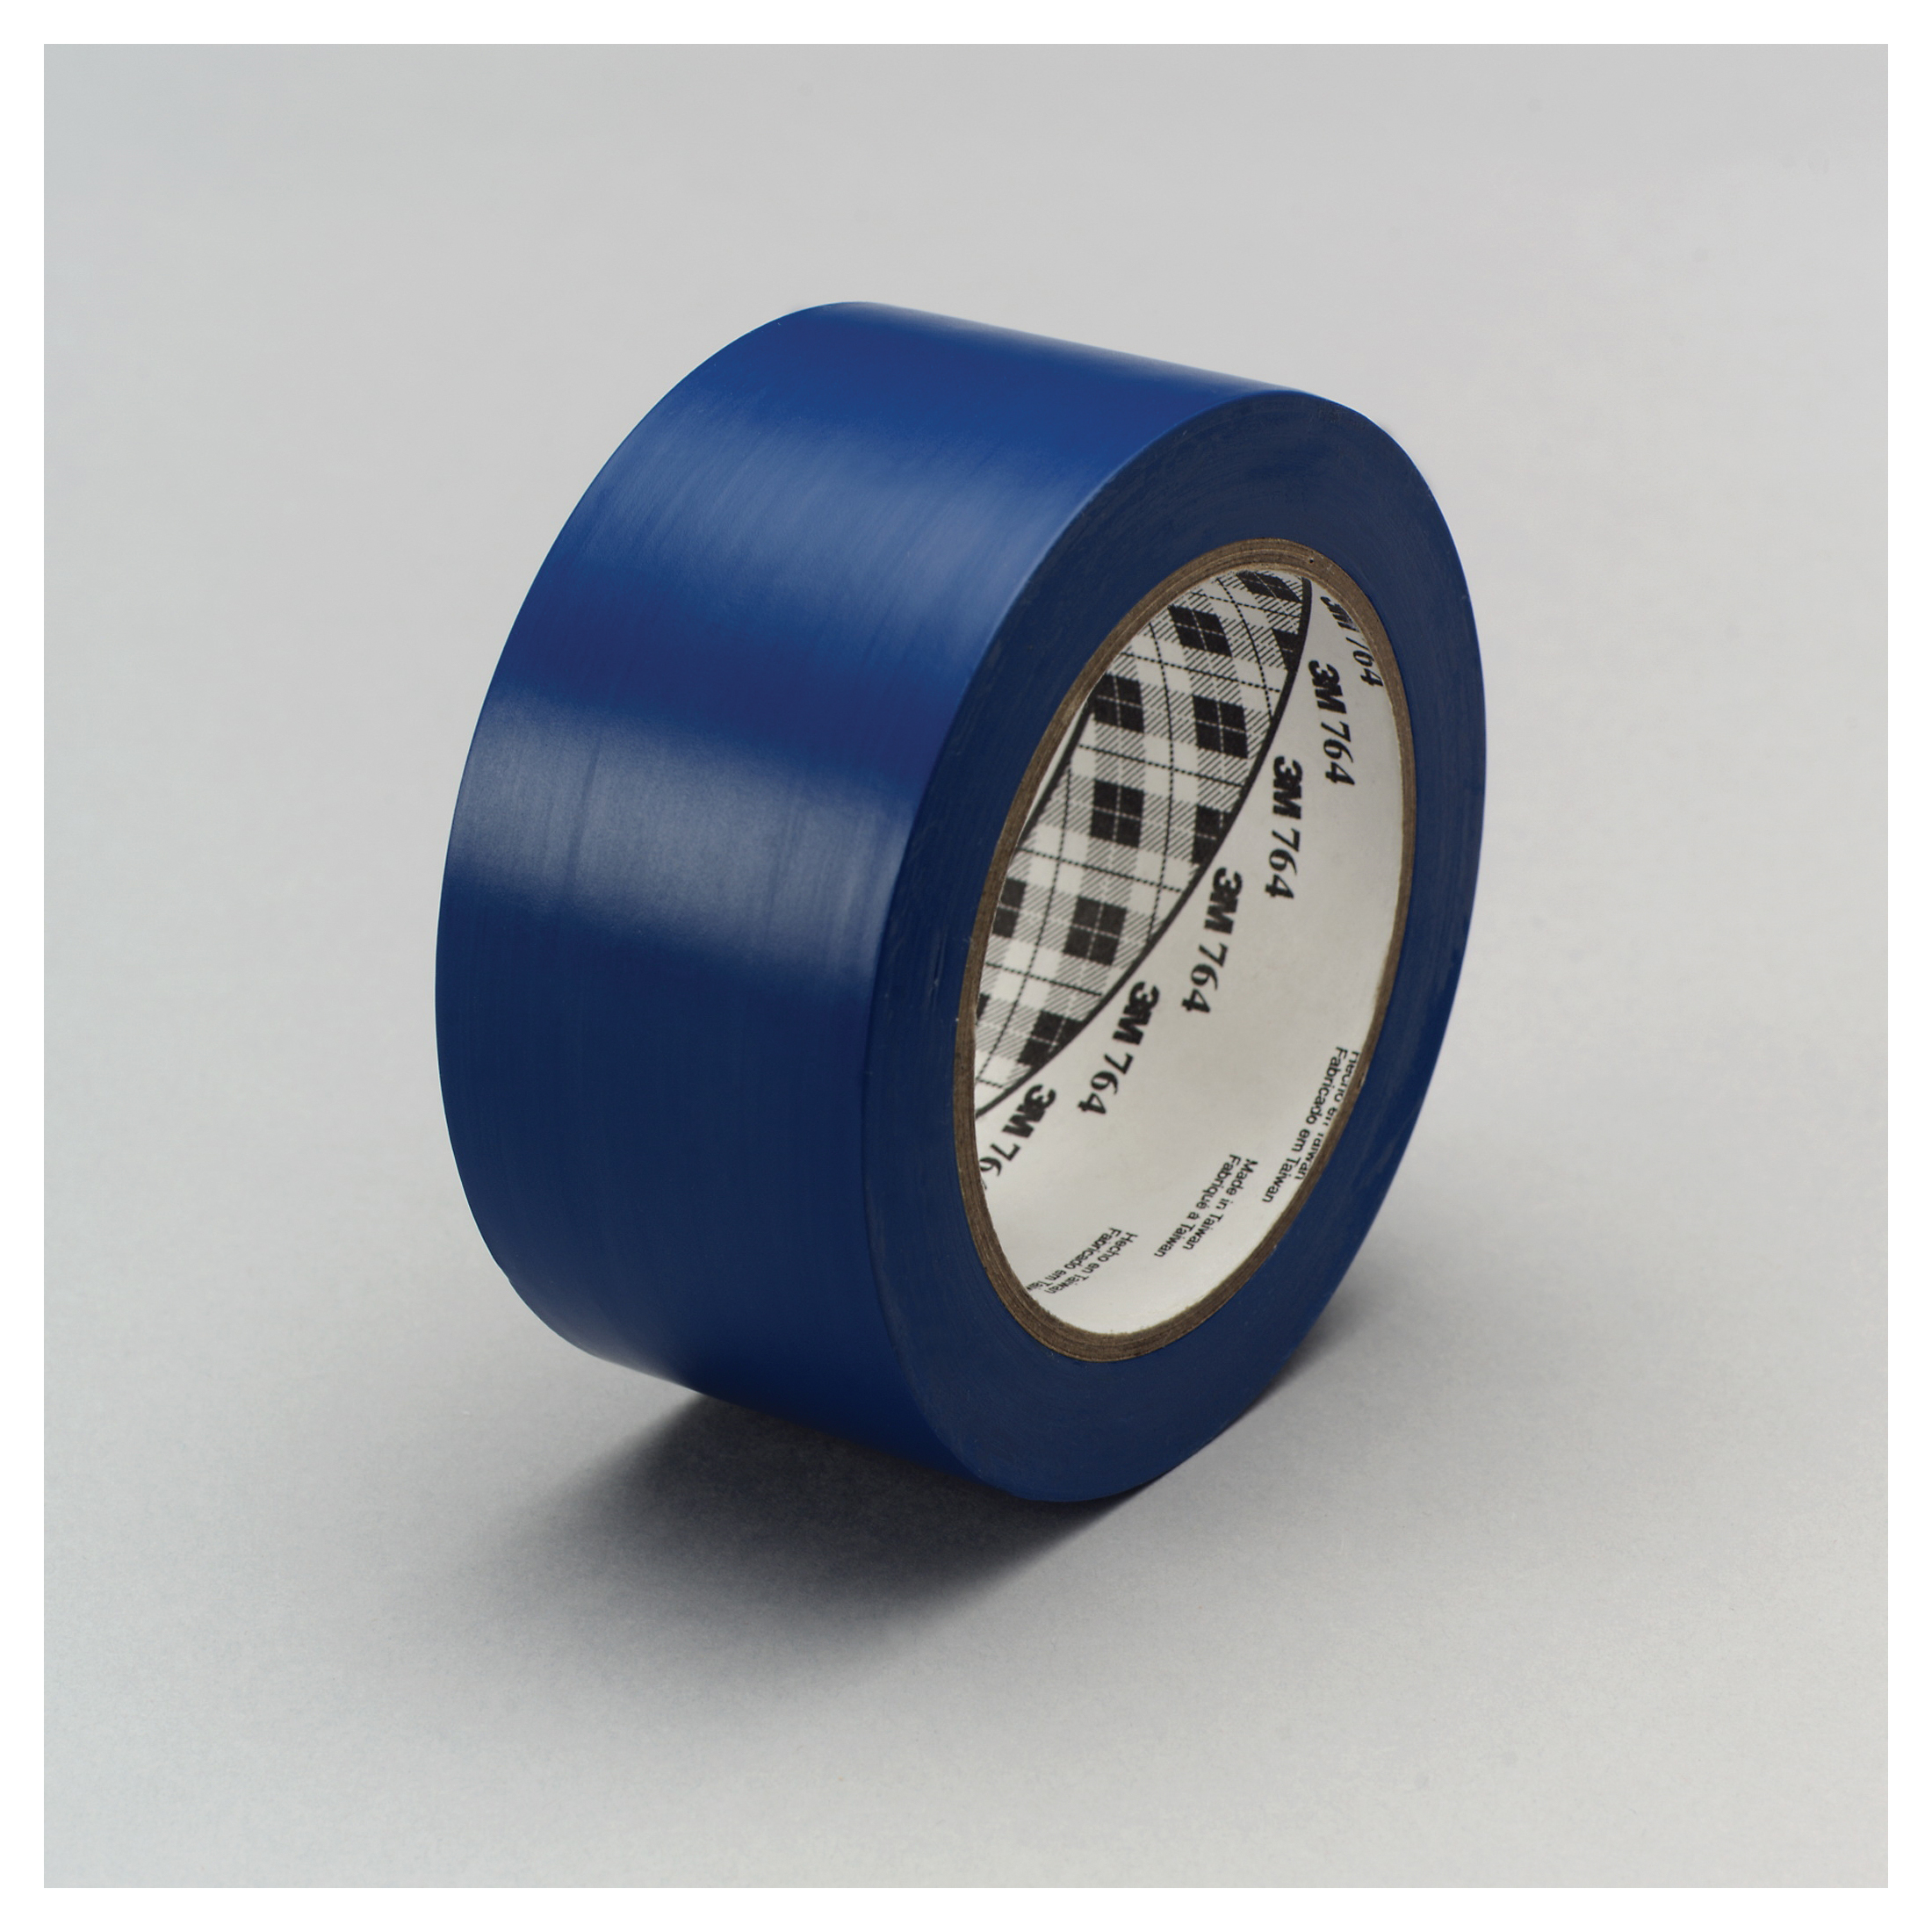 3M™ 021200-43431 General Purpose Vinyl Tape, 36 yd L x 1 in W, 5 mil THK, Rubber Adhesive, PVC Backing, Blue